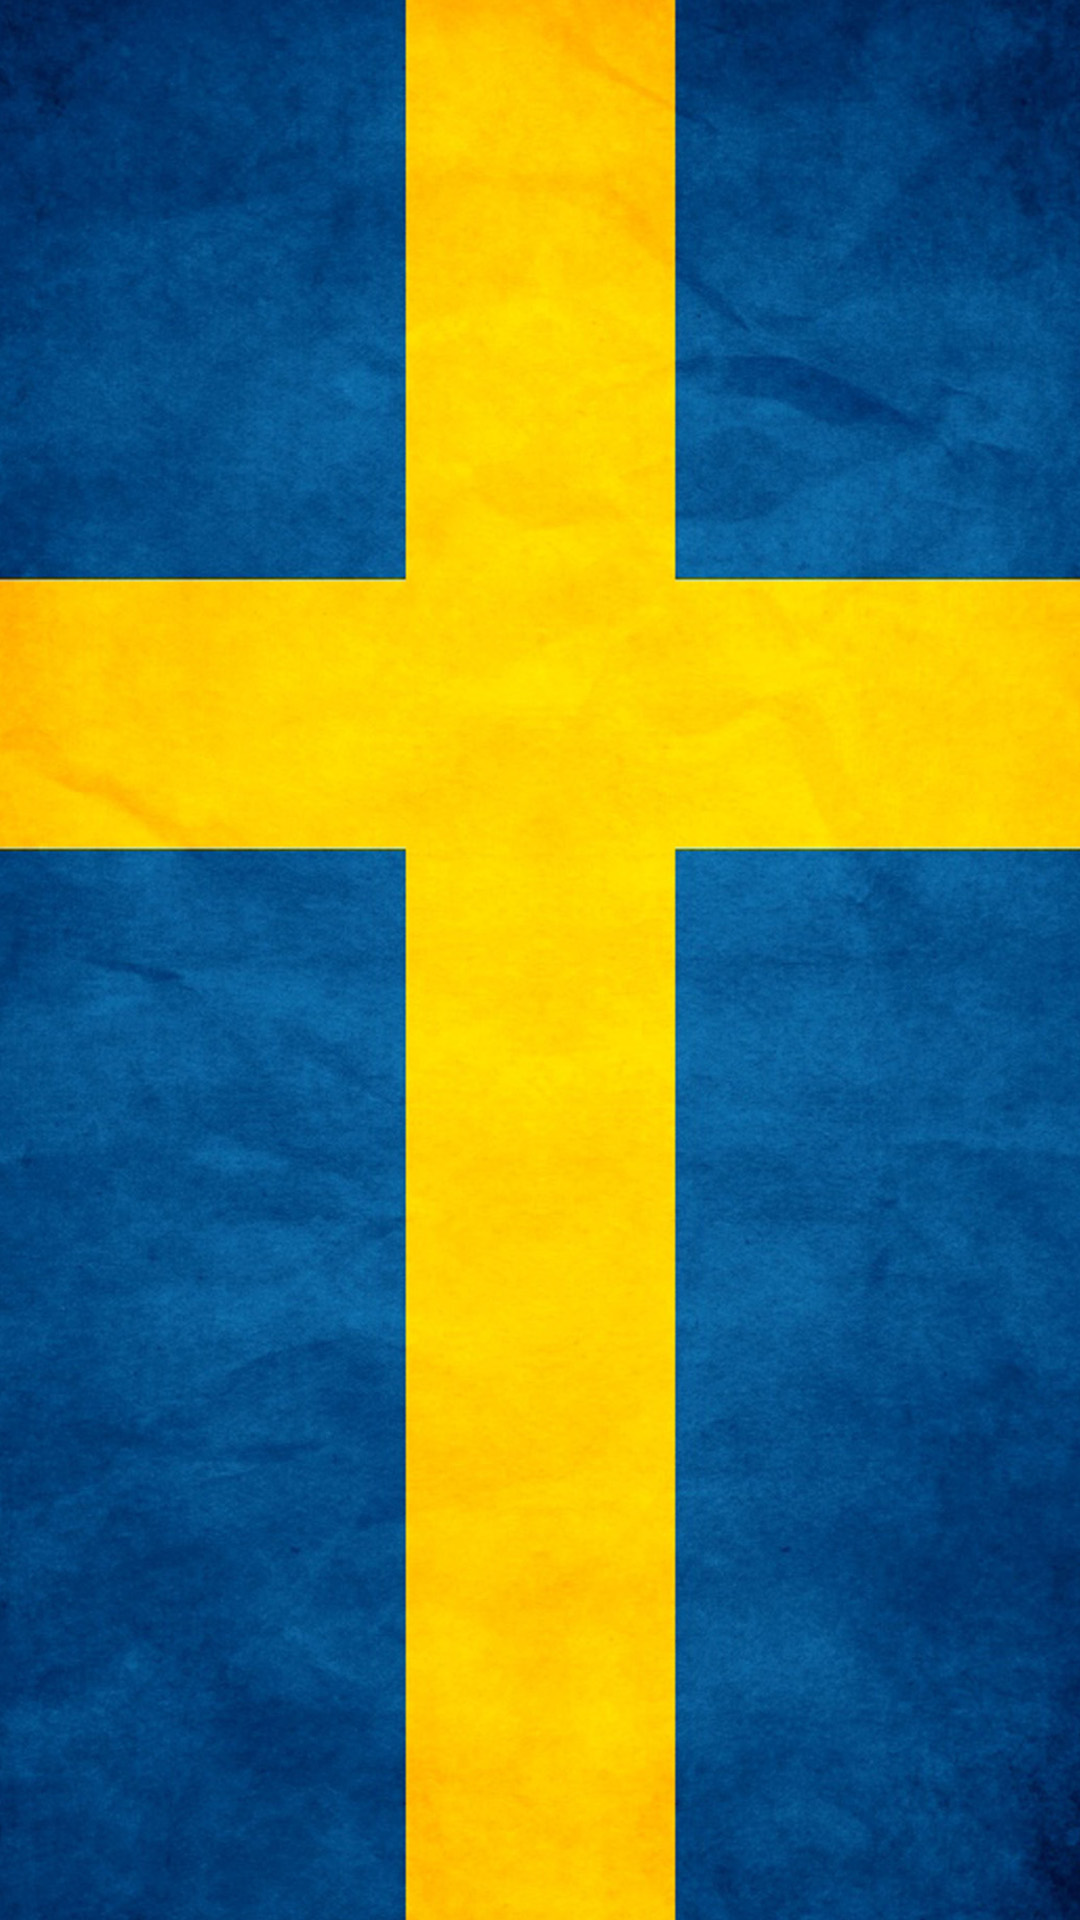 Sweden Flag Wallpaper GetPhotos 1080x1920